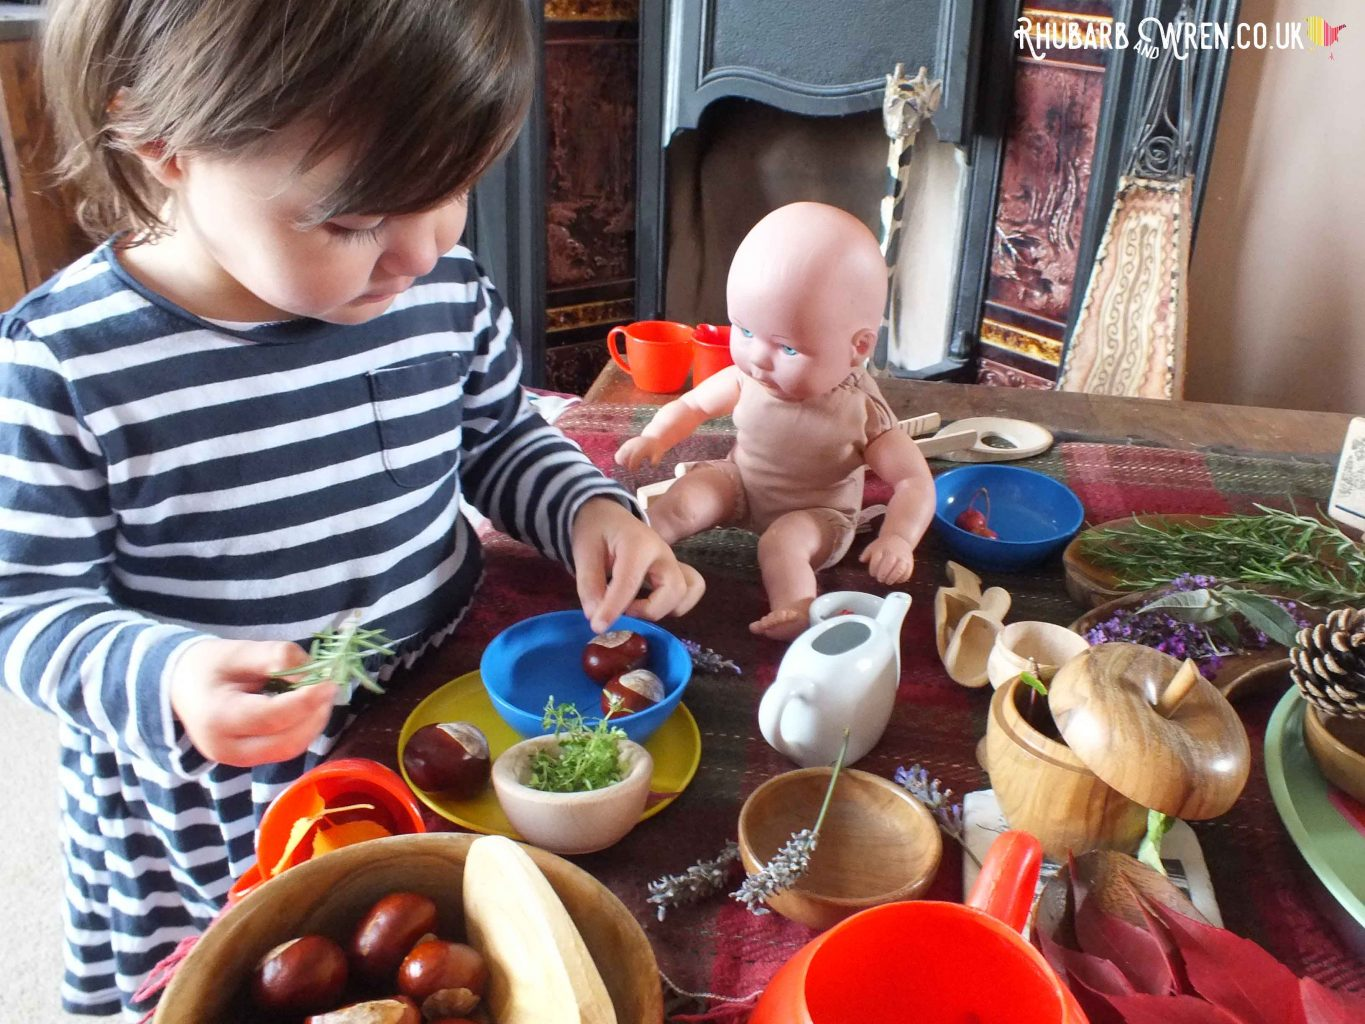 Toddler making doll's tea party with leaves, herbs and flowers